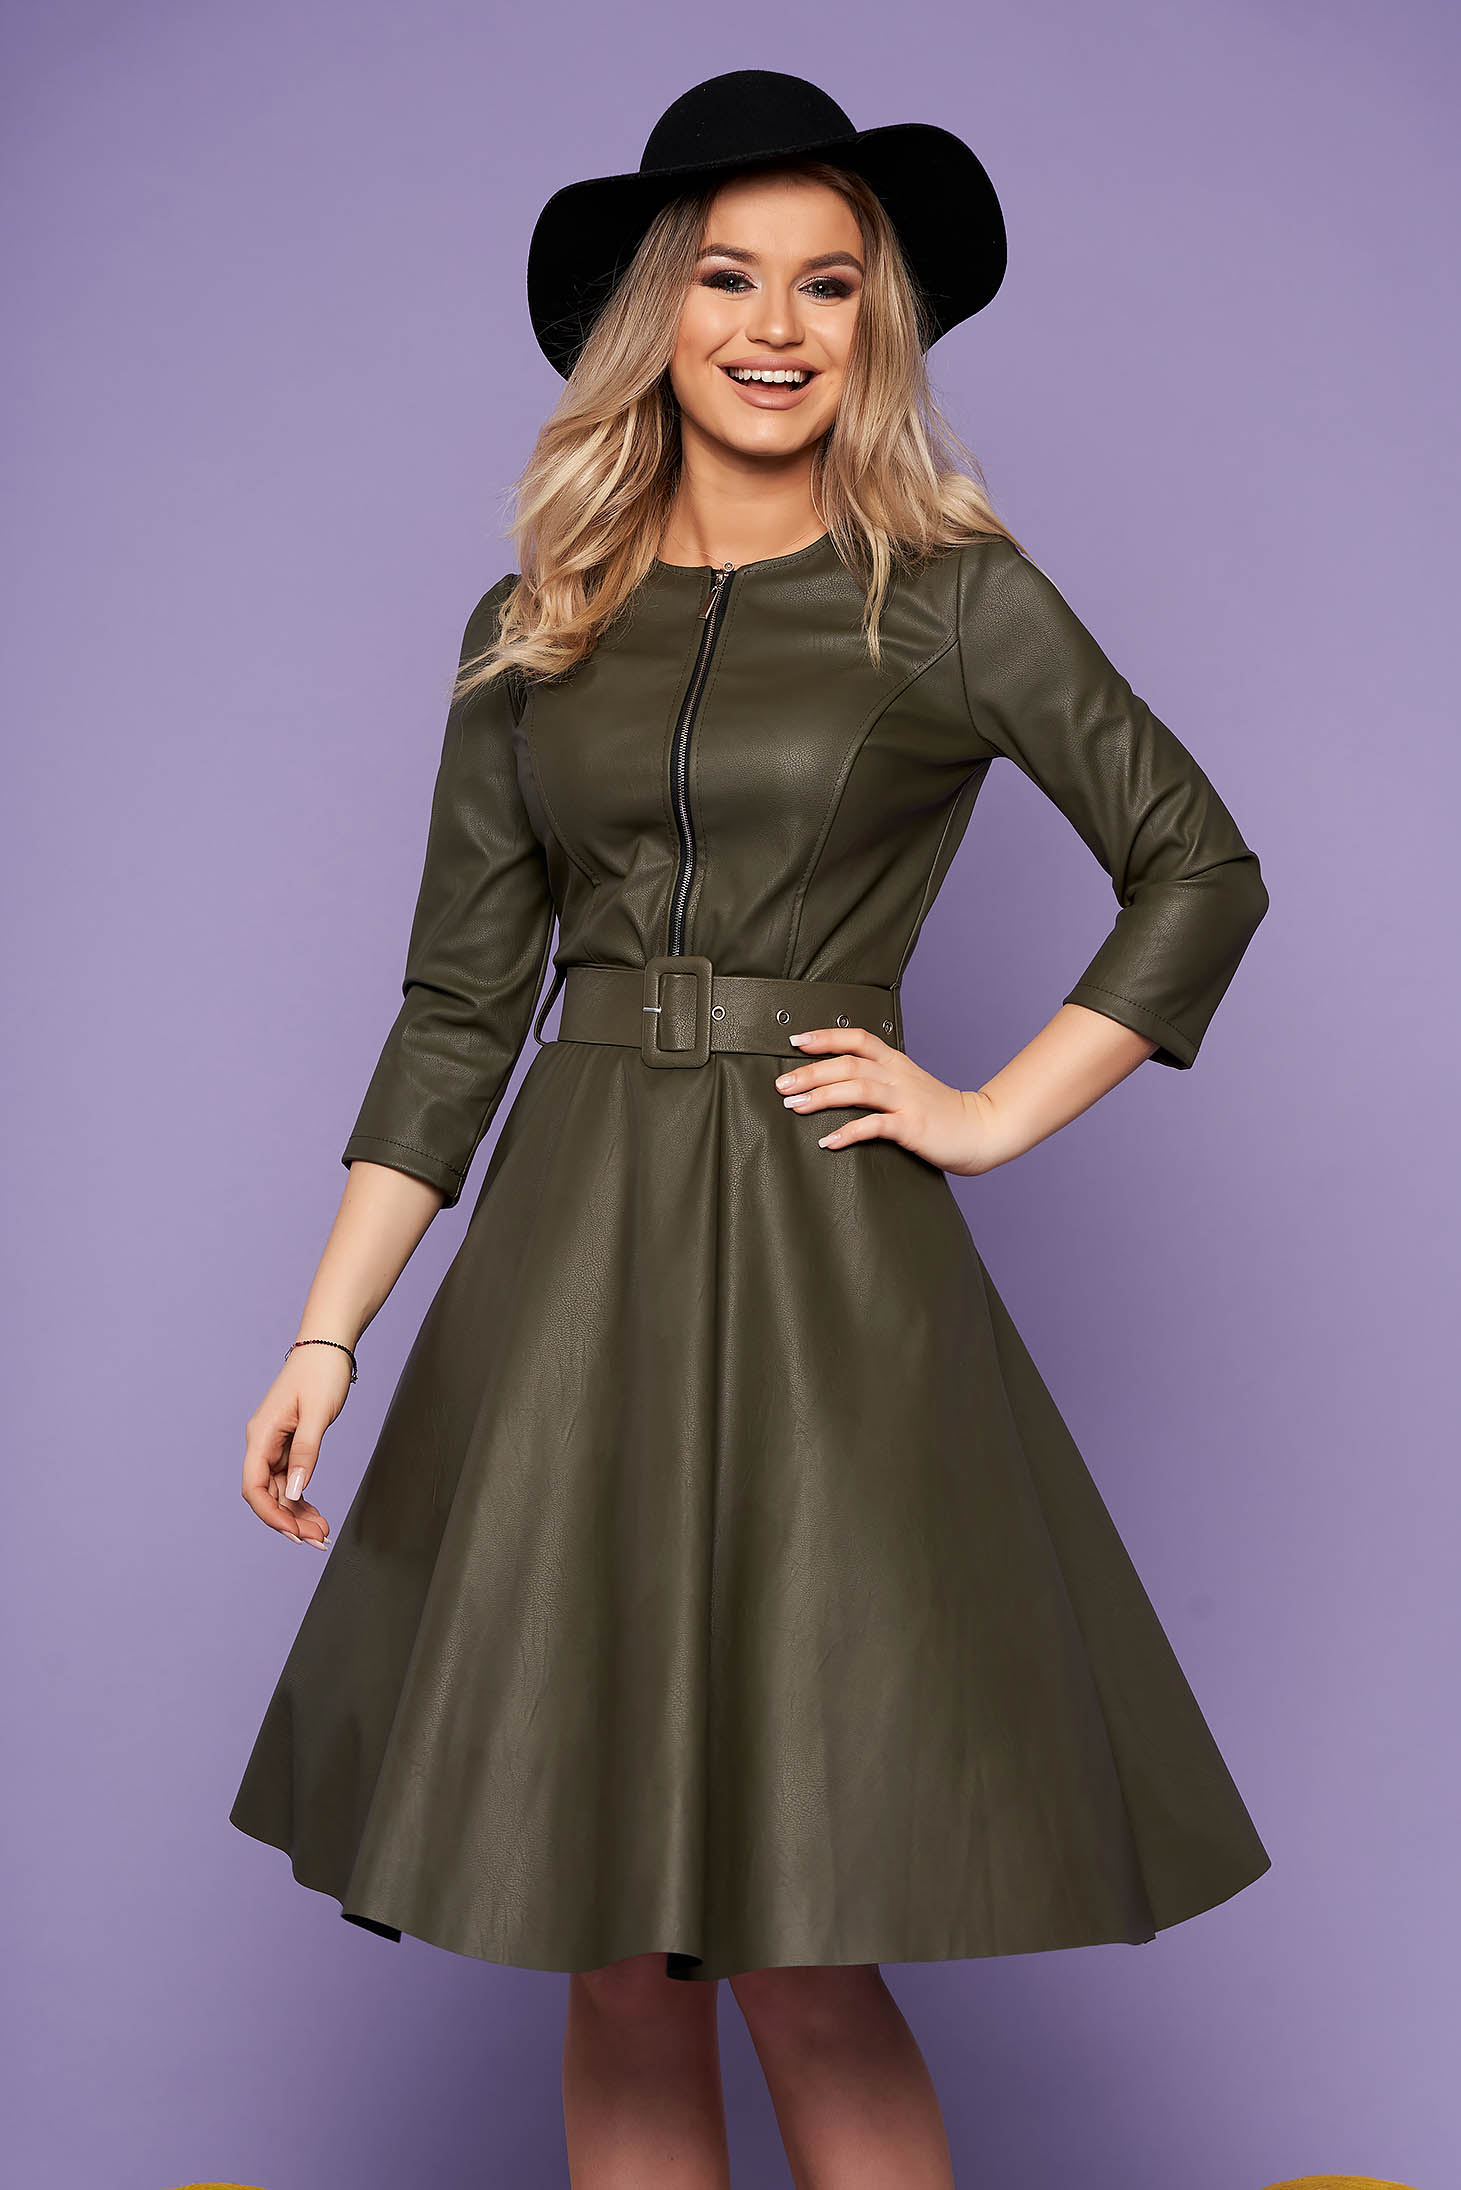 Khaki daily dress flaring cut ecological leather accessorized with belt